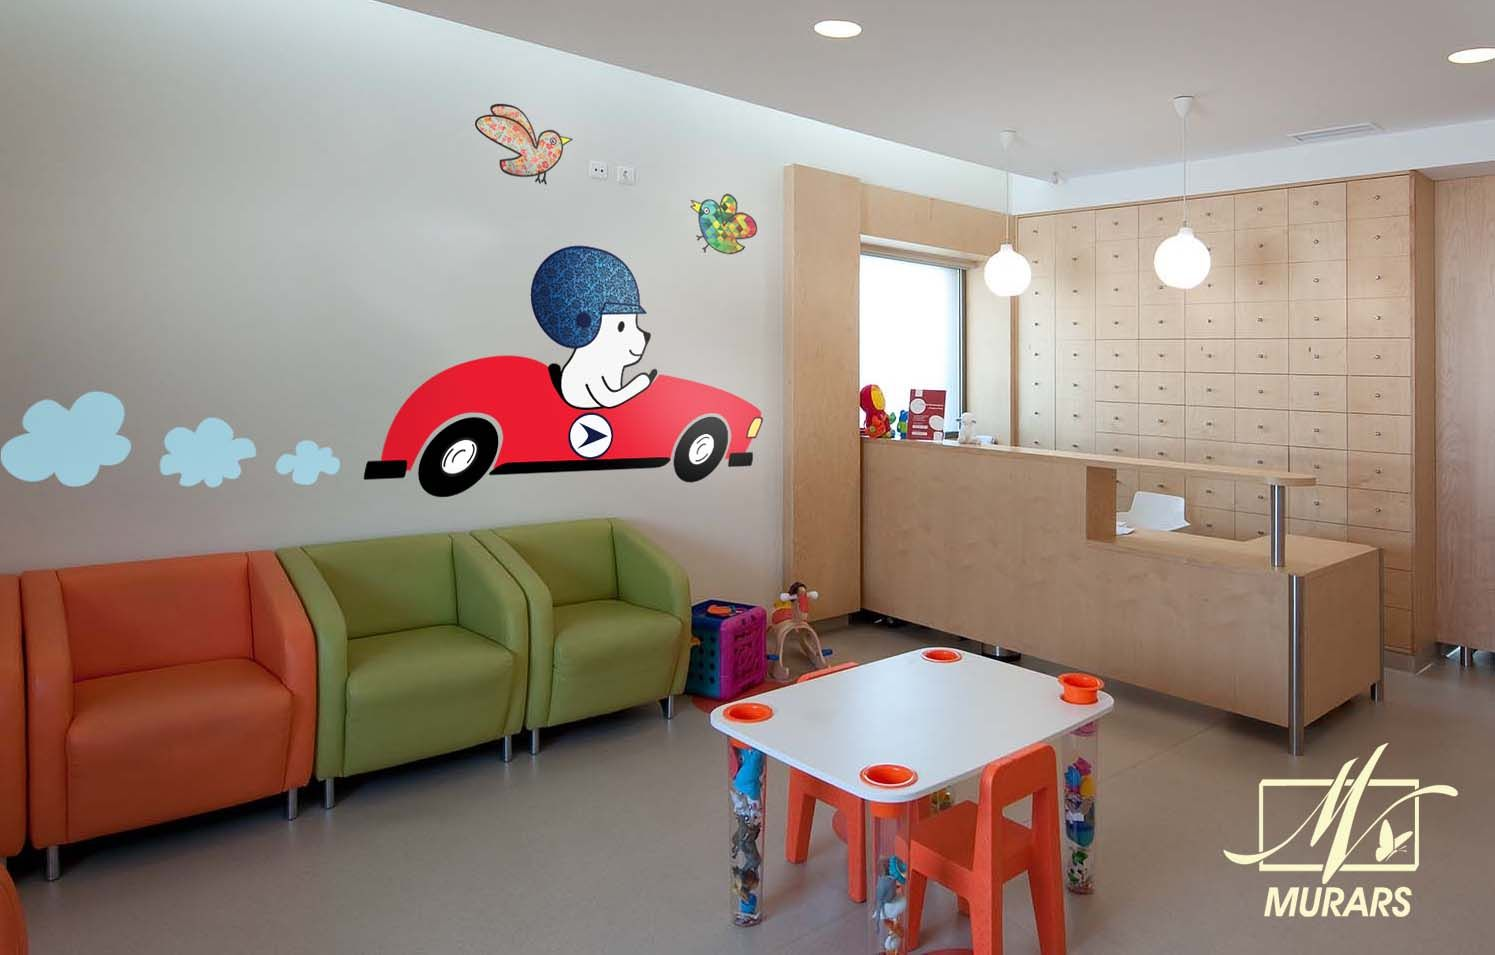 1000 Images About Ideas Para El Consultorio On Pinterest: Decoración Para El Looby De Una Clinica Pediatrica. MURARS